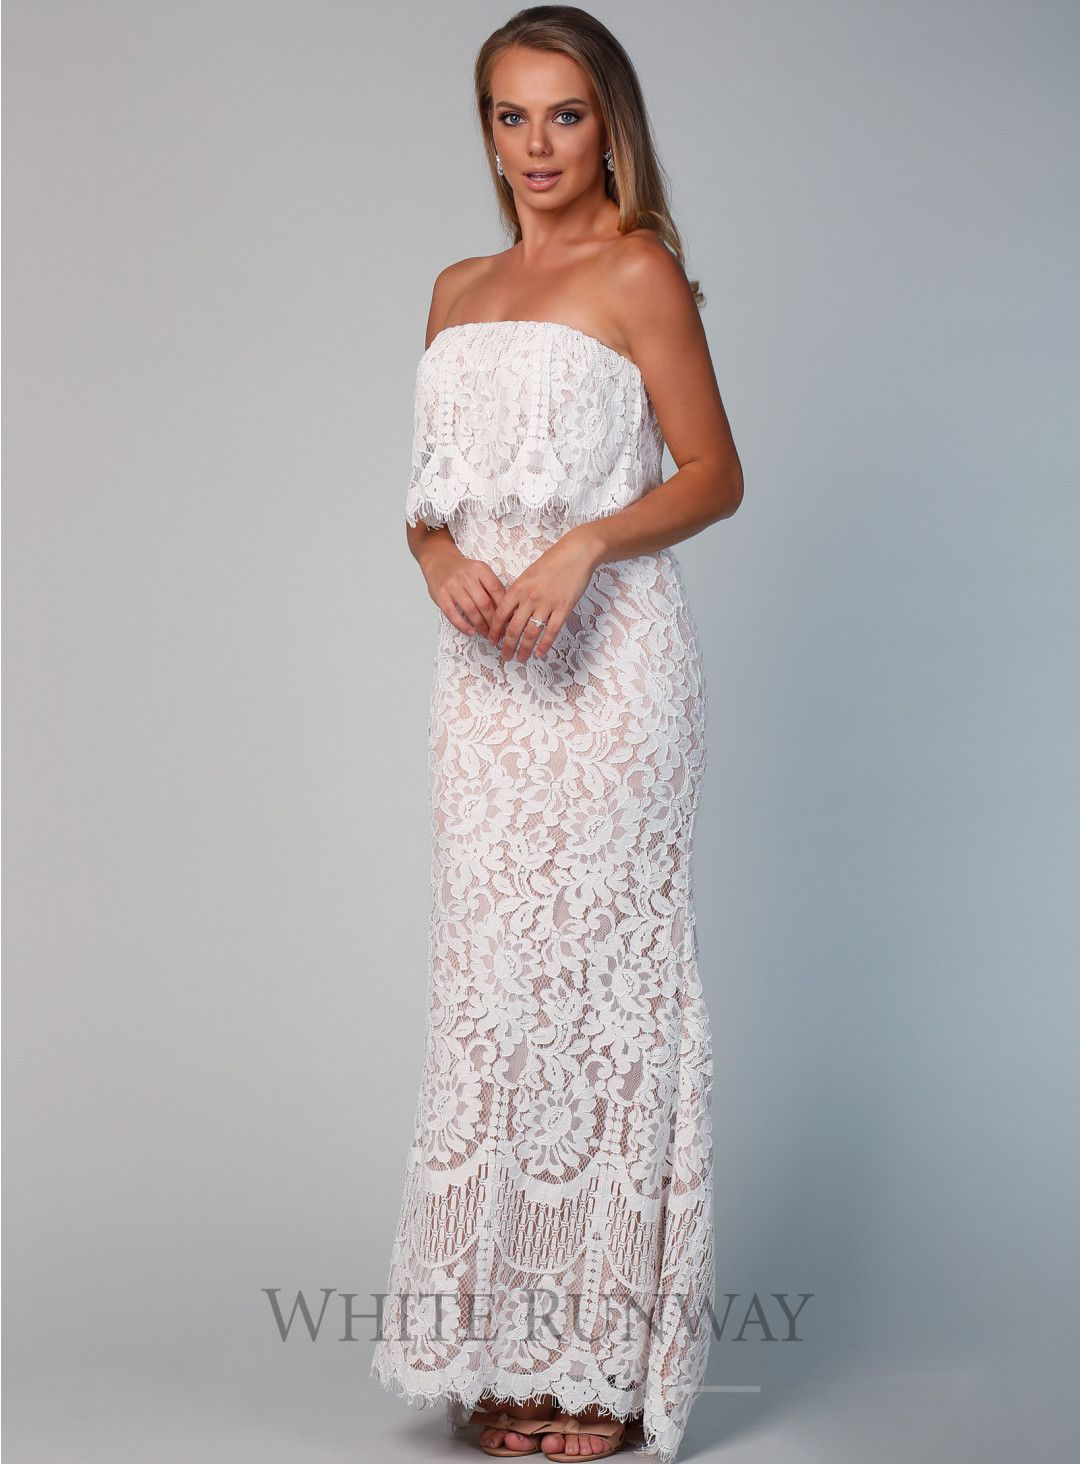 7eb2f442643a Pre-Order Adeline Dress. A lovely full length dress by Jarlo London. A  flattering strapless style featuring all over ivory lace with nude lining  and lace ...